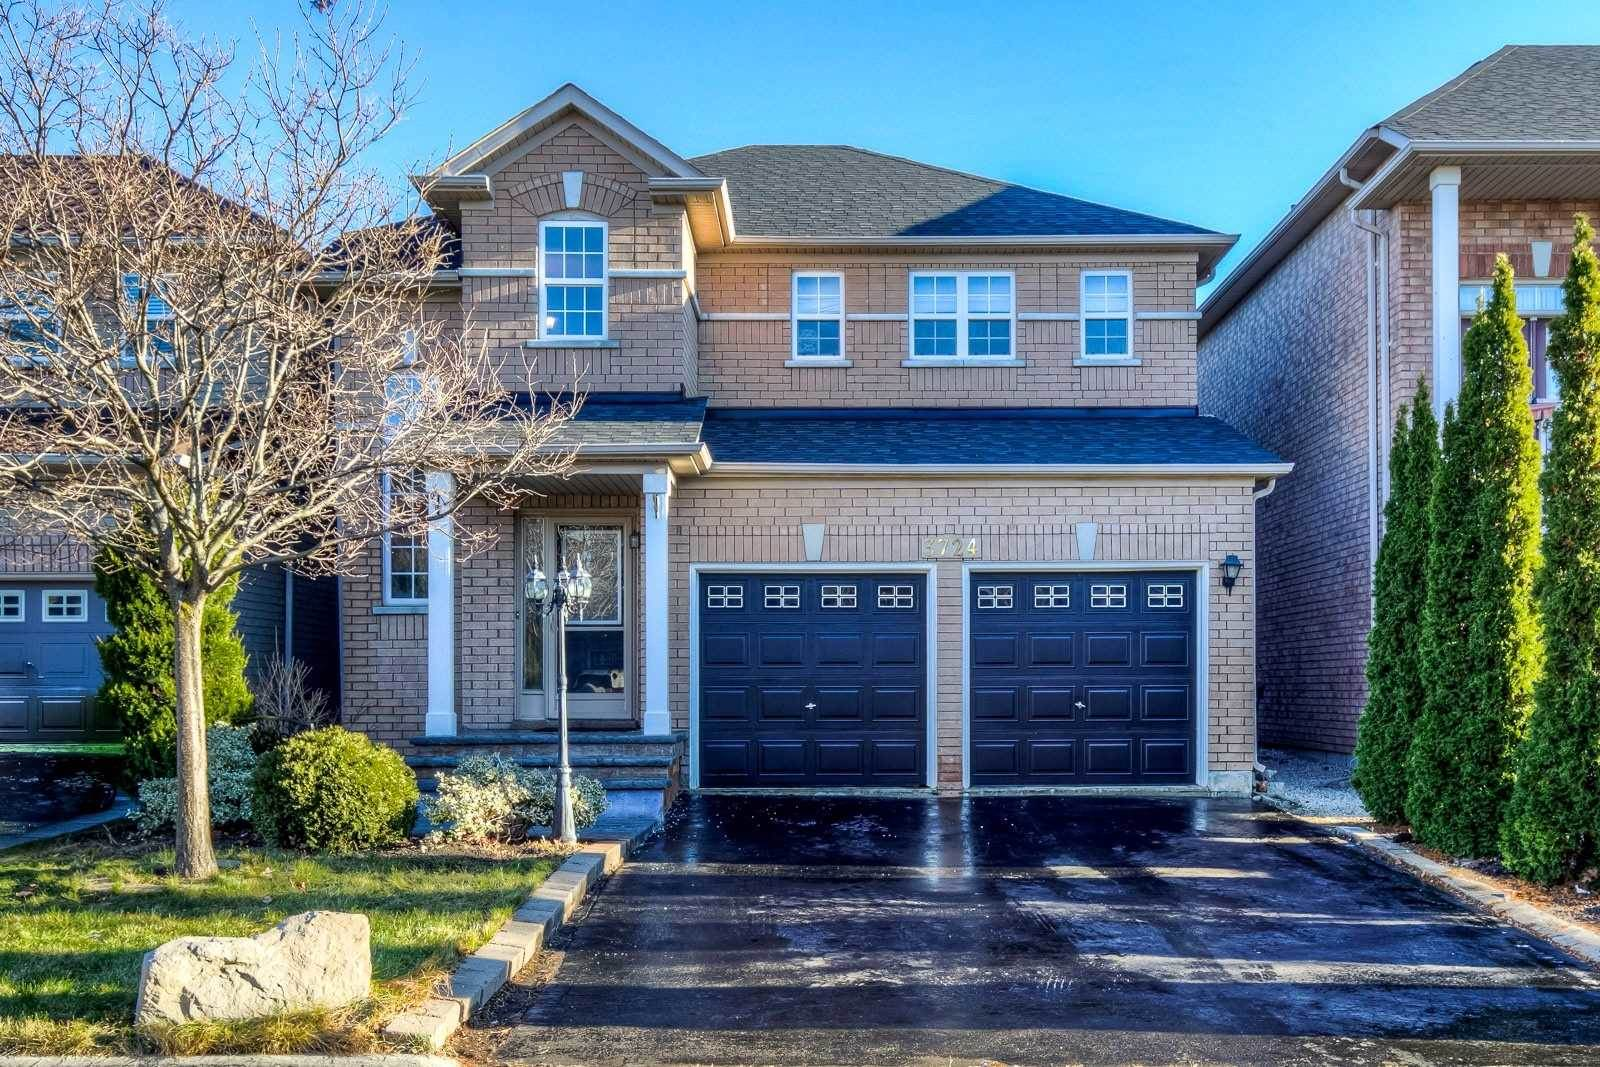 3724 Pearlstone Drive, Mississauga - For Sale $929,220 | SOLD for 95% of asking!